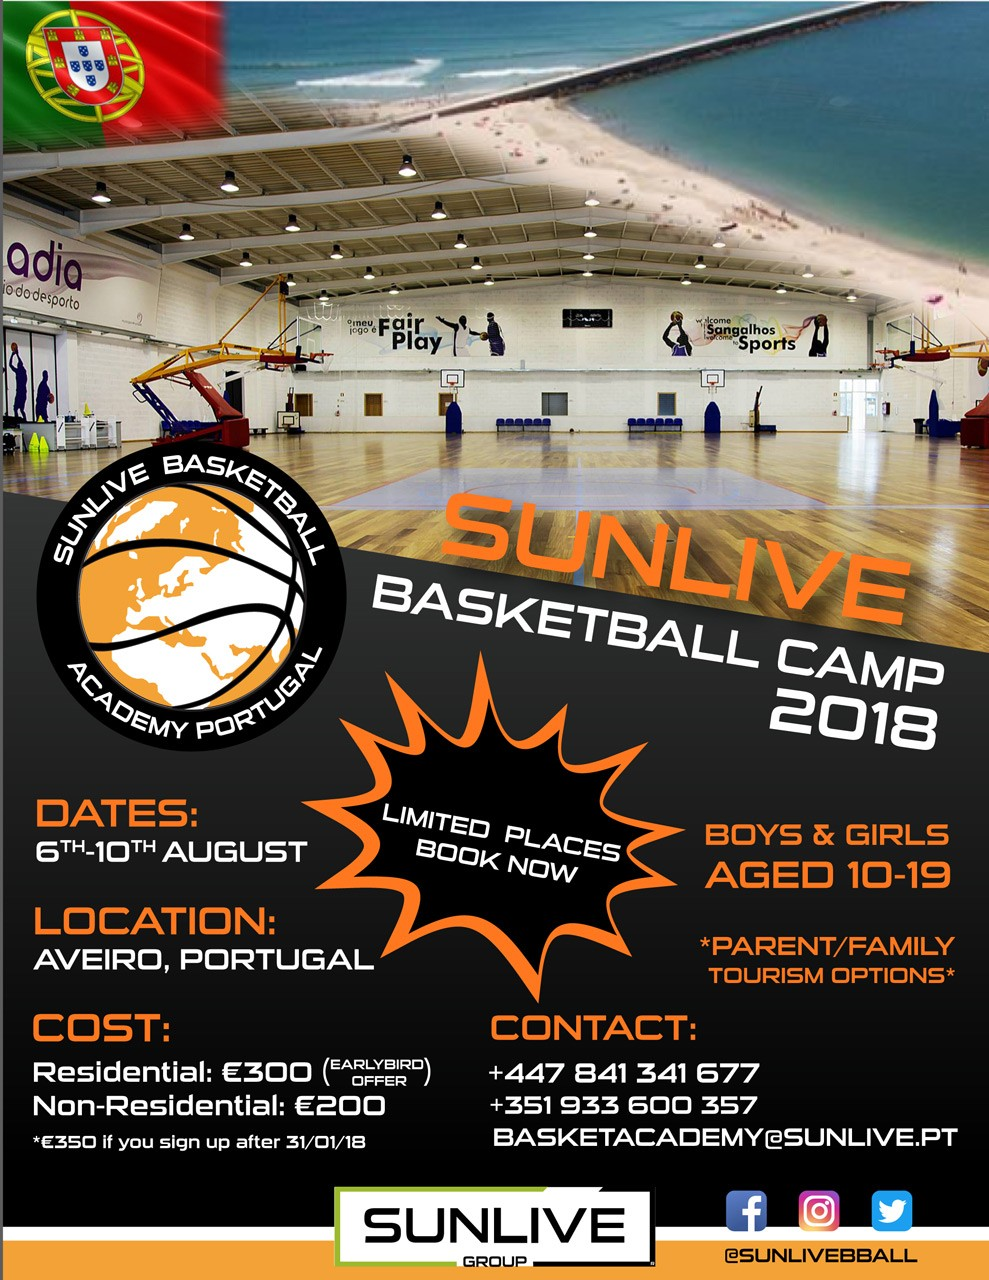 SUNLIVE-BASKETBALL-CAMP-2018